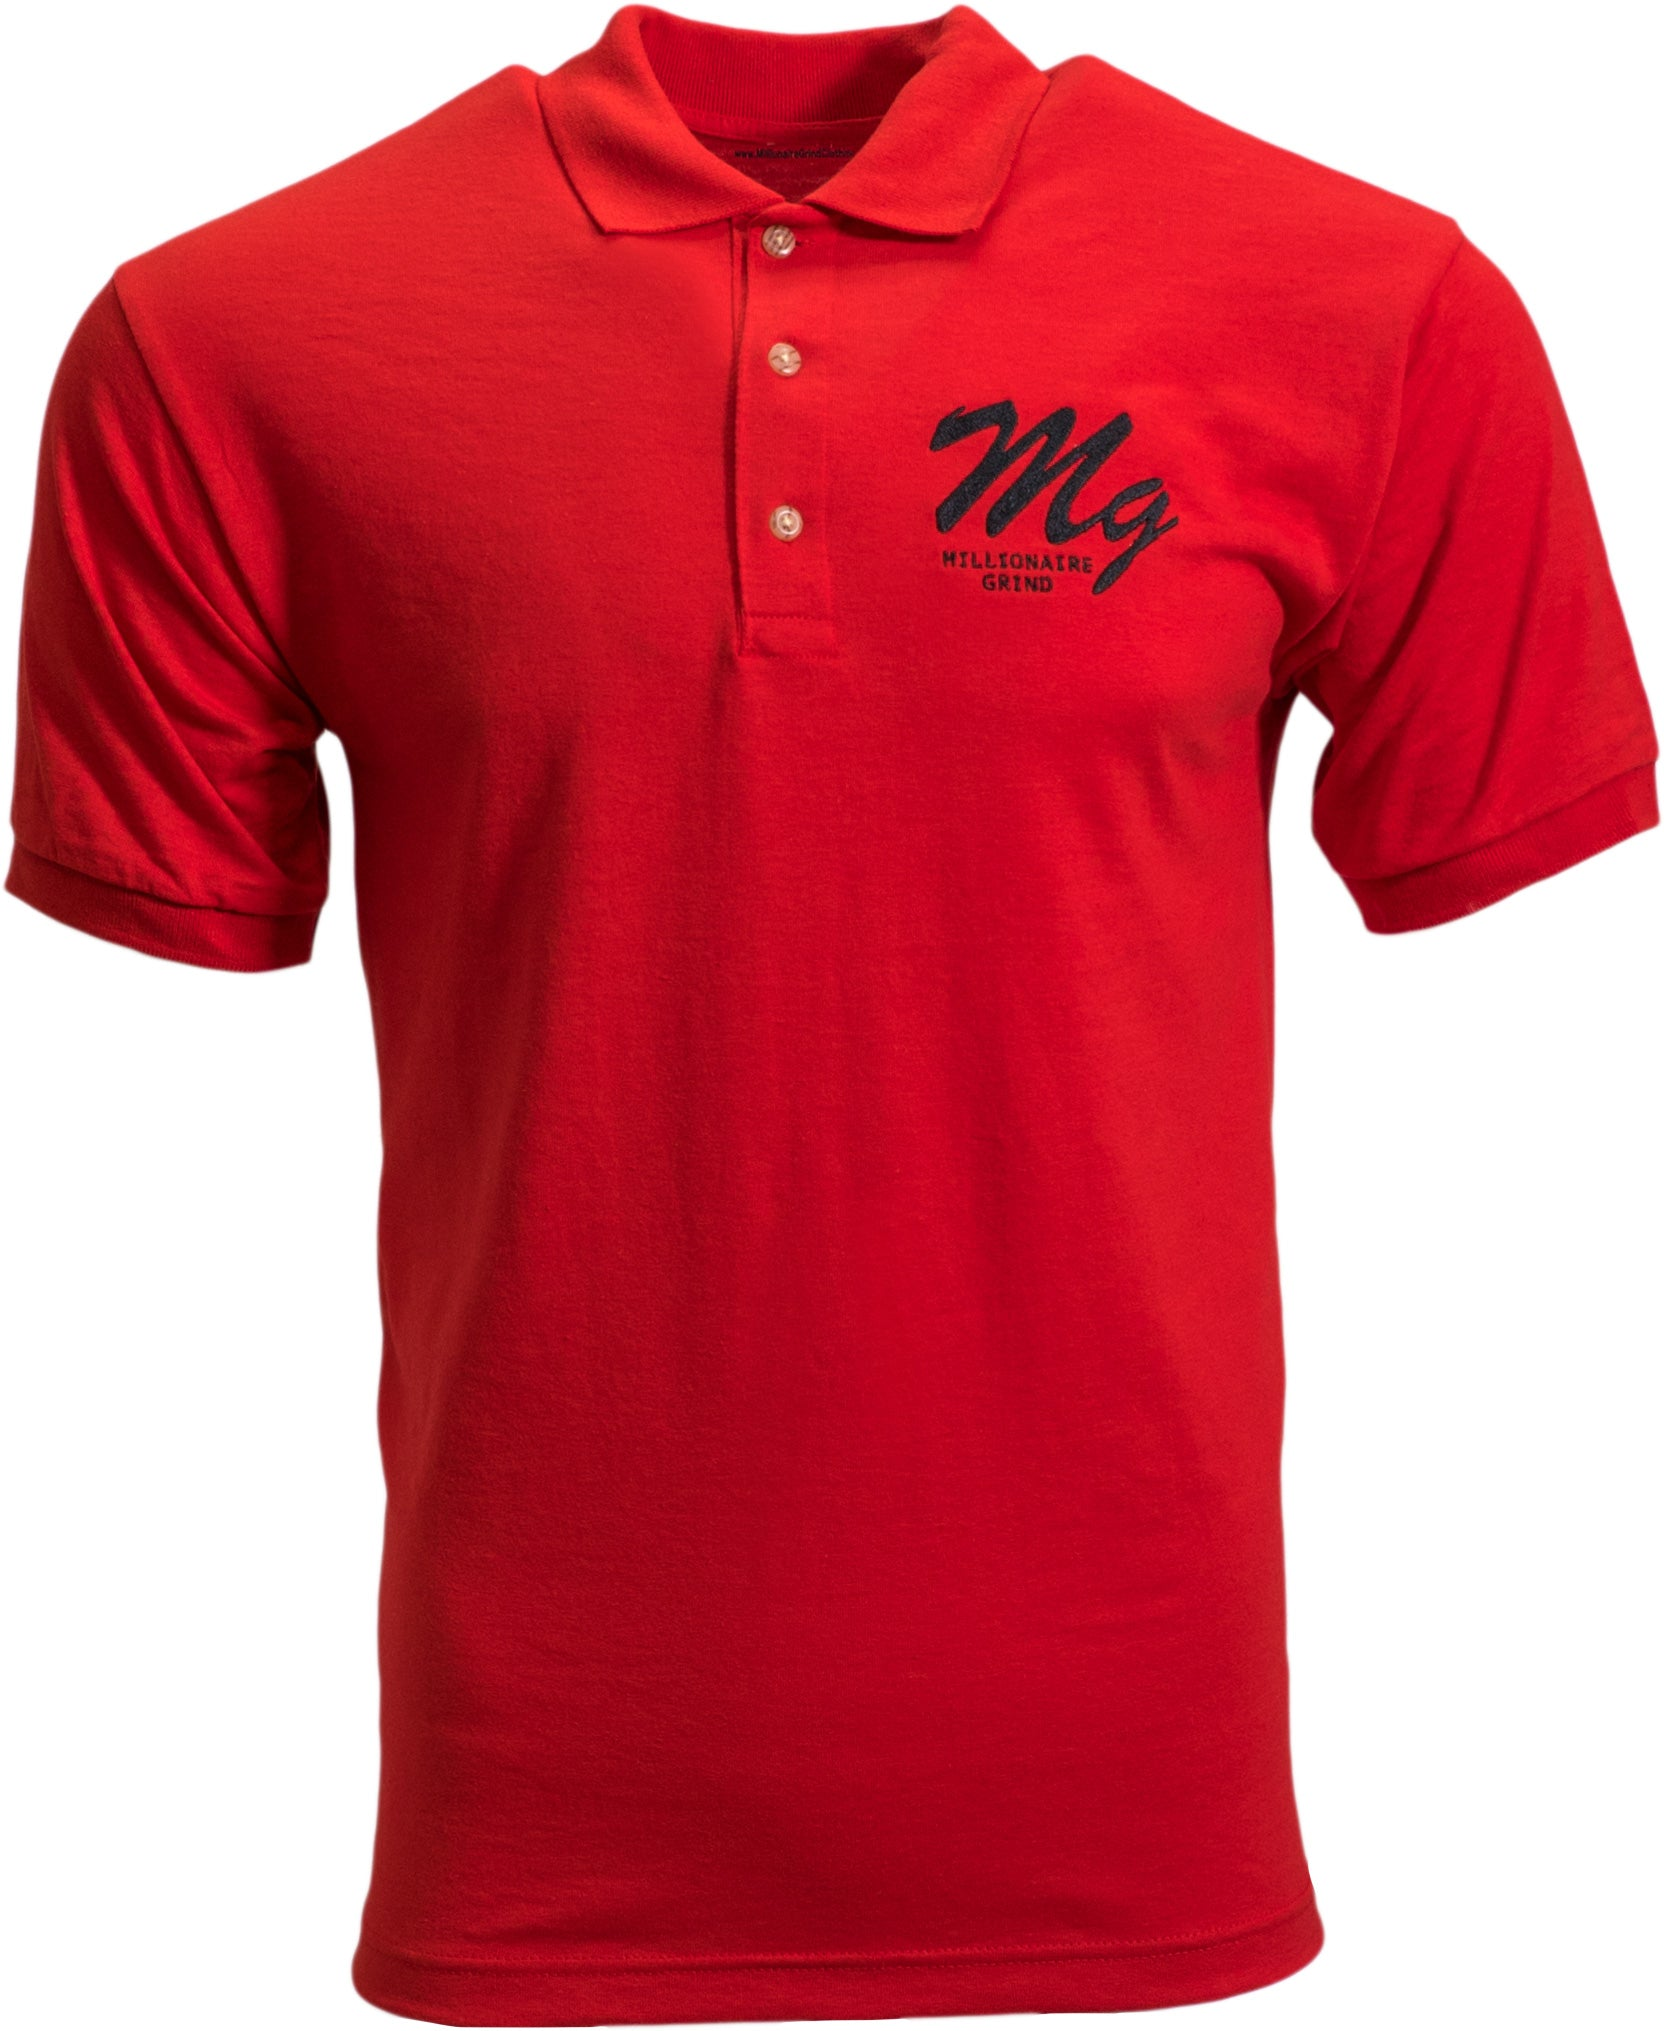 Millionaire Grind - Polo (Red / Black)